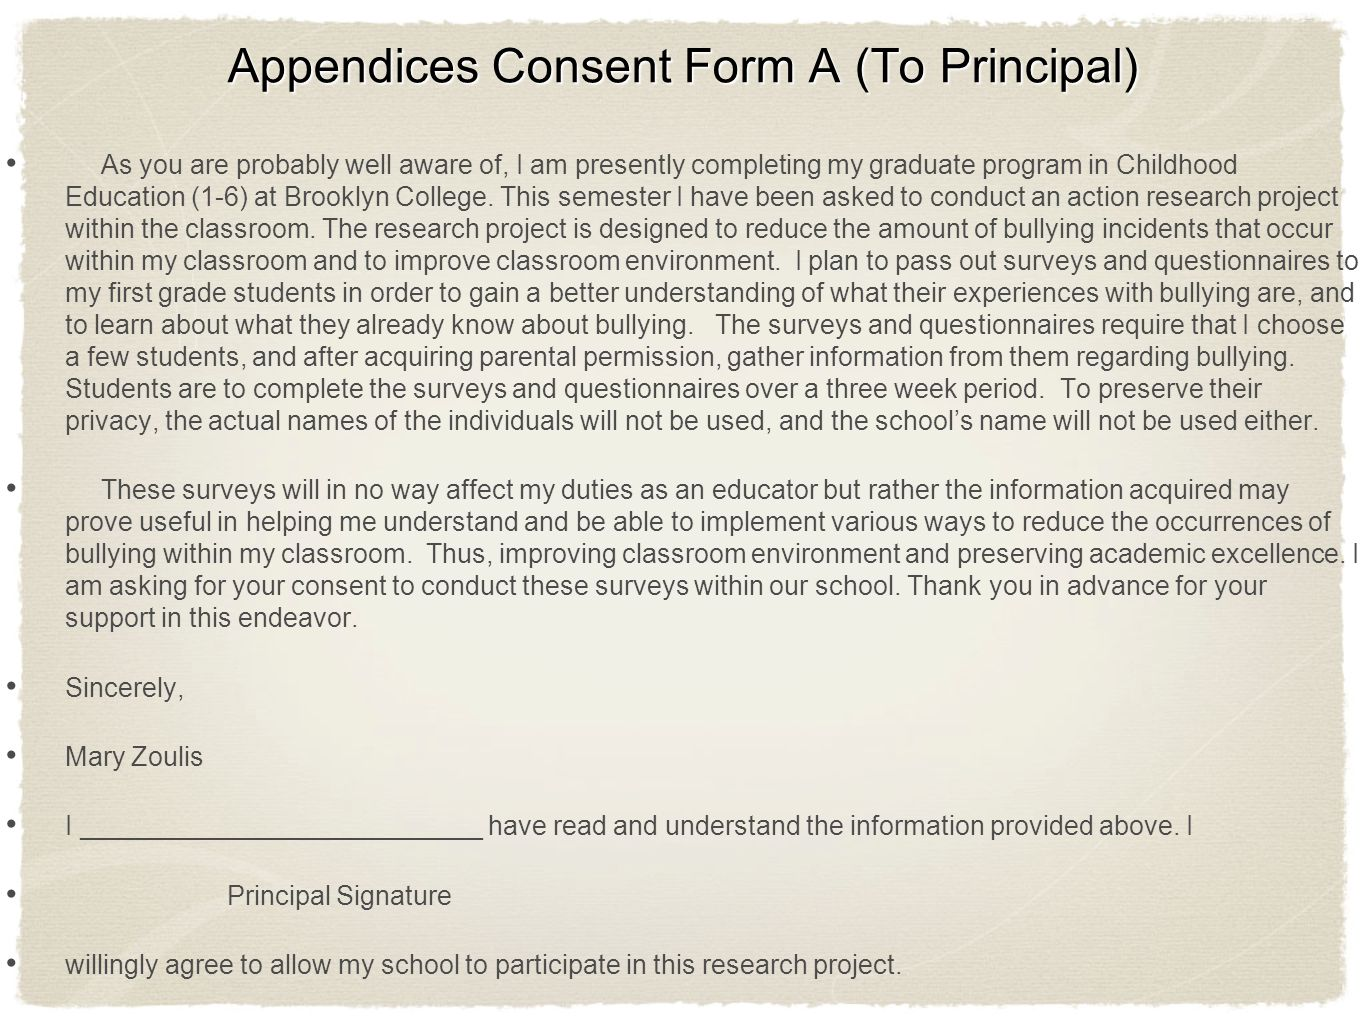 Consent Form B (To Parents) Dear Parent(s)/Guardian(s), I am currently a graduate student at Brooklyn College, and am in the process of completing an action research project.